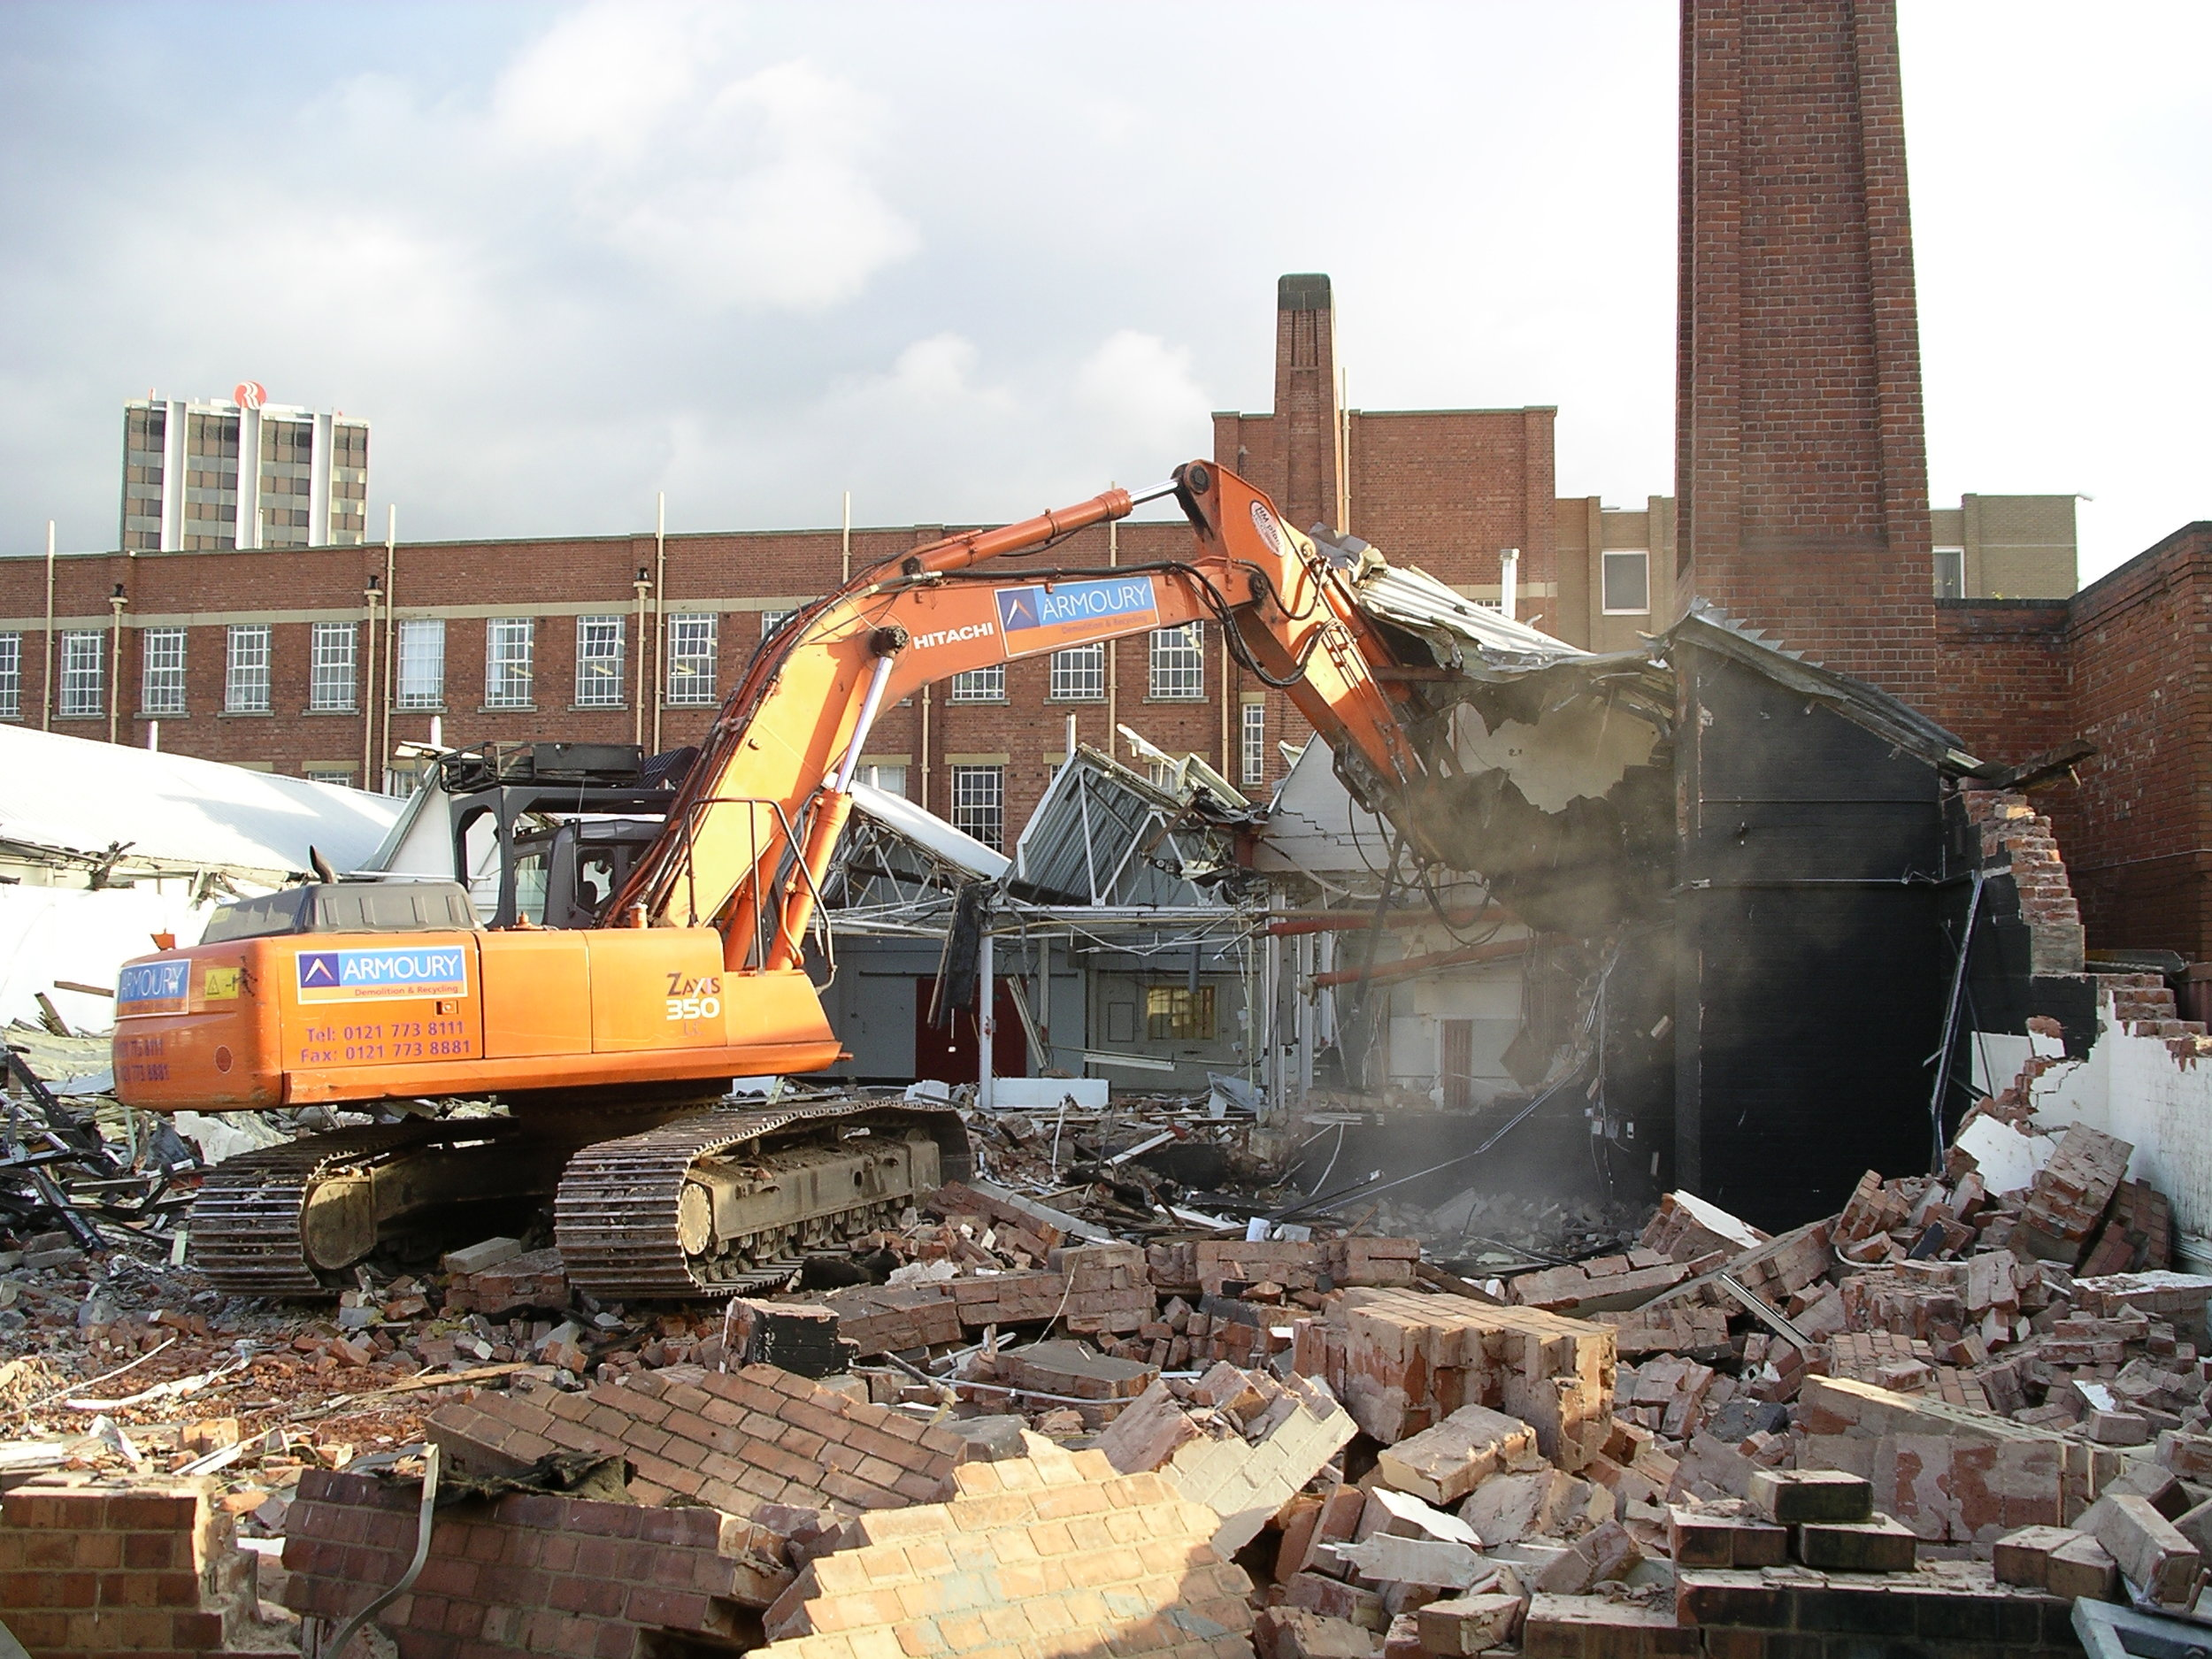 Middlefield Hospital has been demolished.This makes it very important to have photos of what it looked like. -